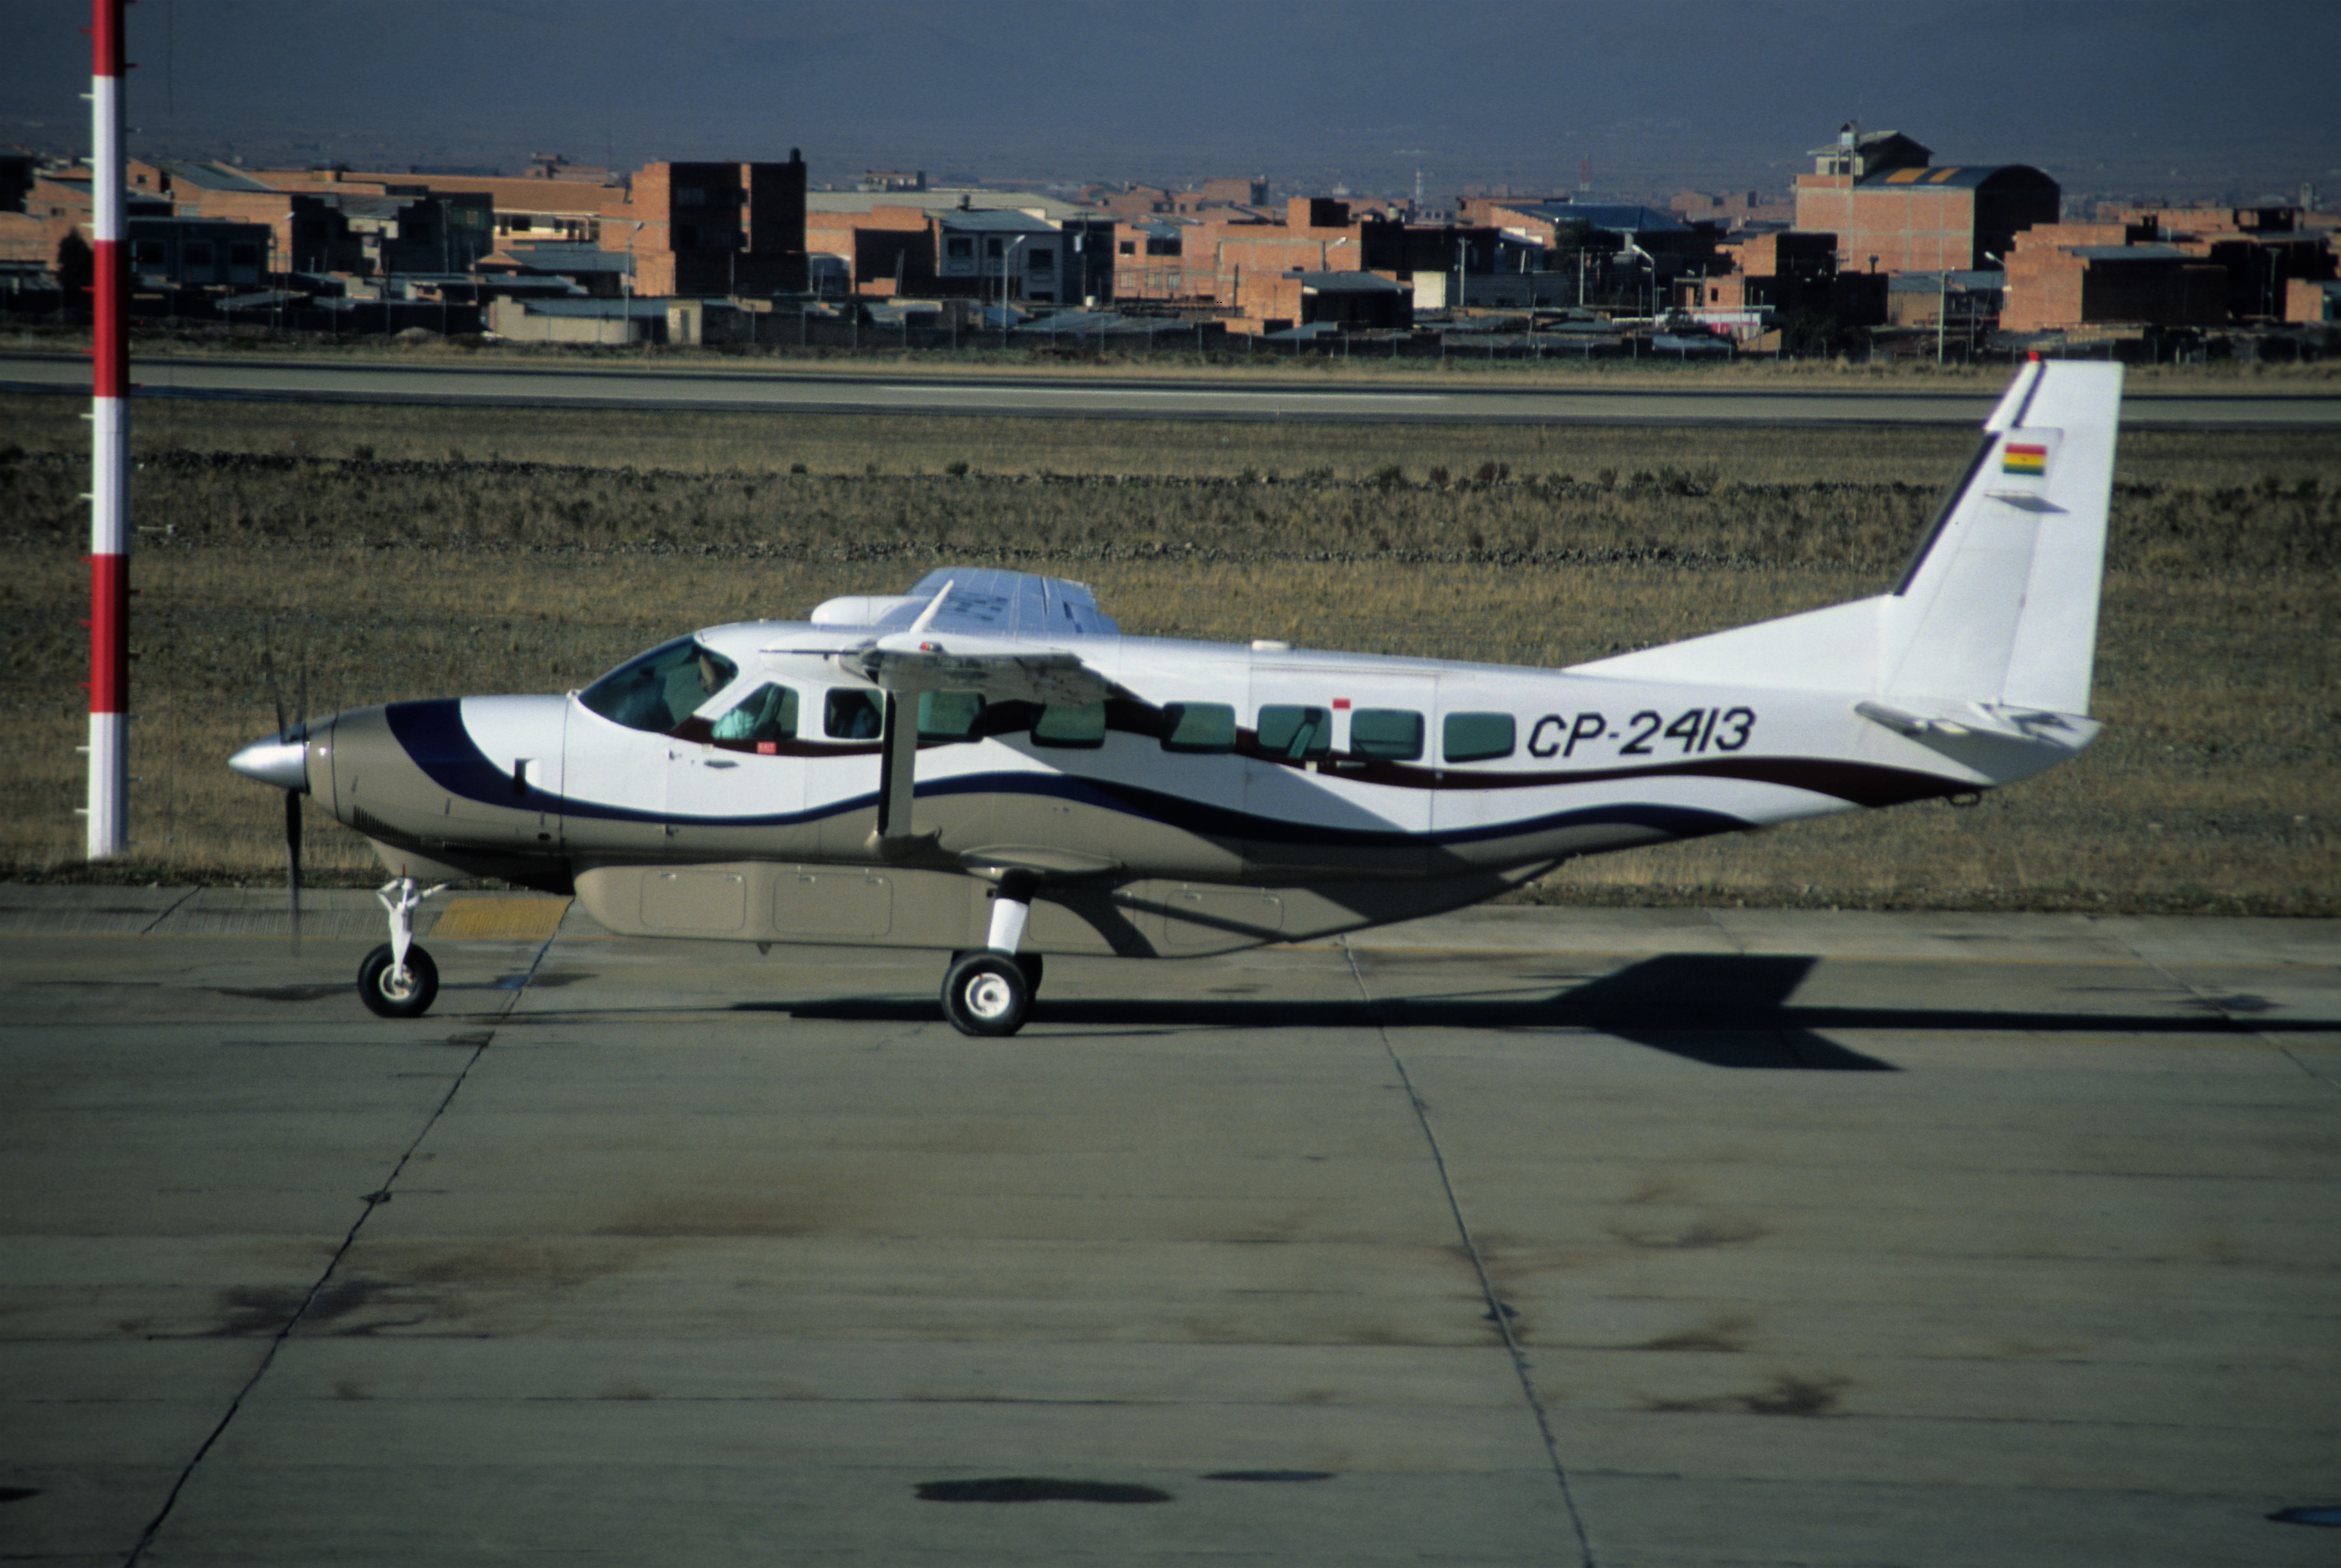 File:325ah - AMASZONAS Cessna 208B; [email protected];02.10.